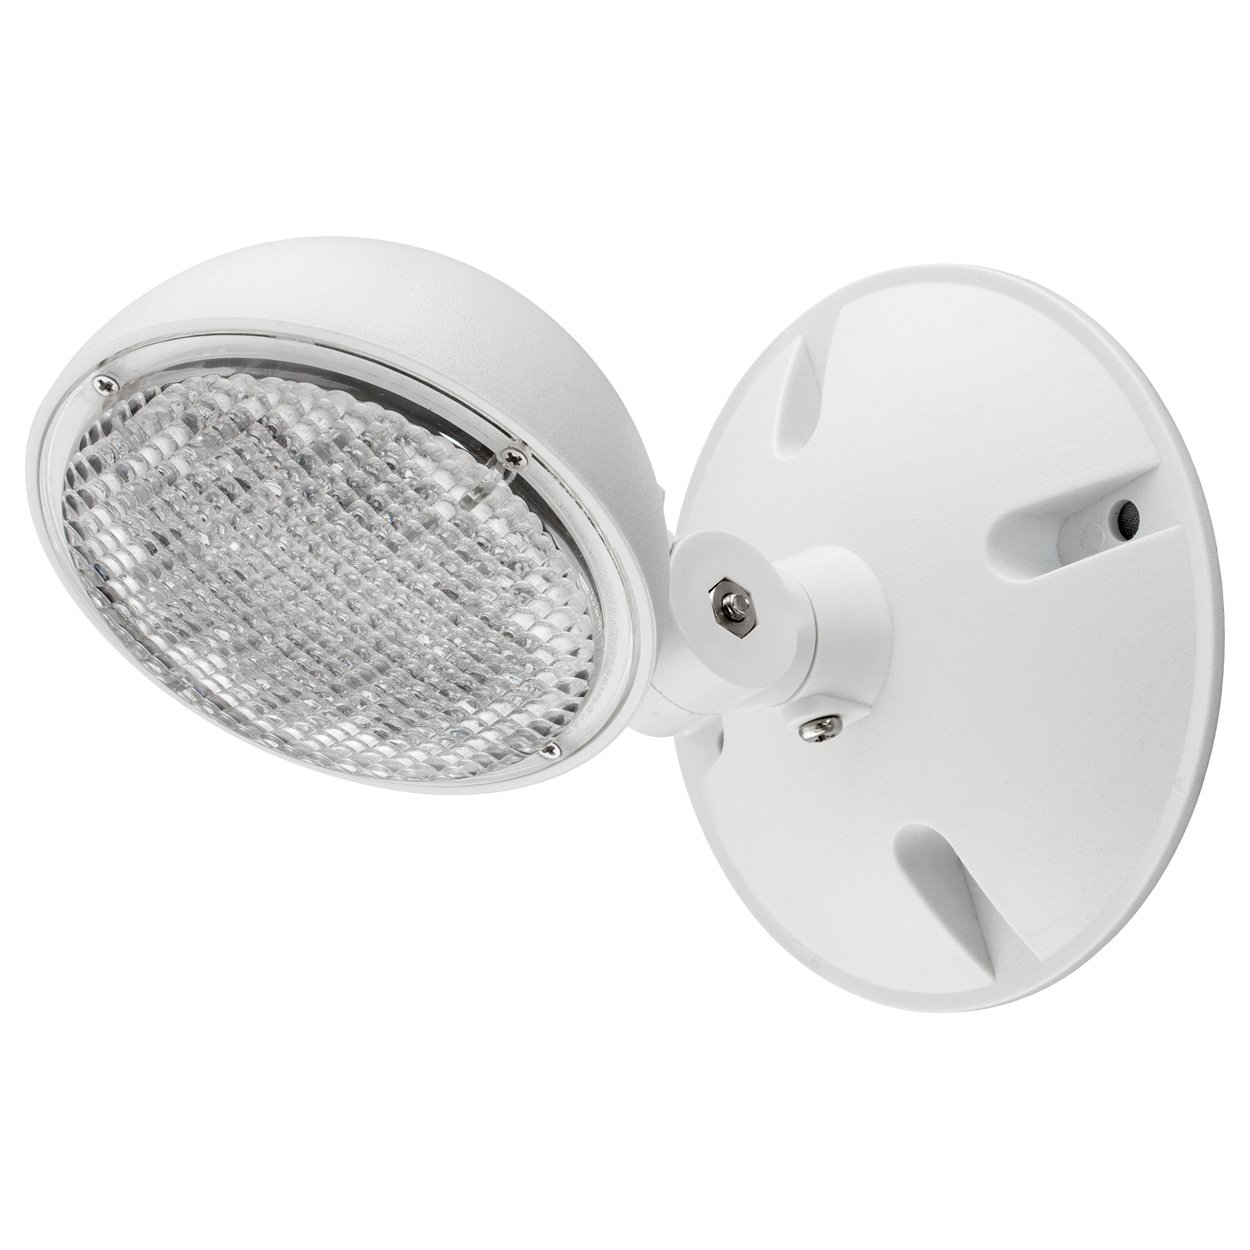 Awesome Compass CORS Hubbell Lighting LED Single Head Emergency Light   Commercial Emergency  Light Fixtures   Amazon.com